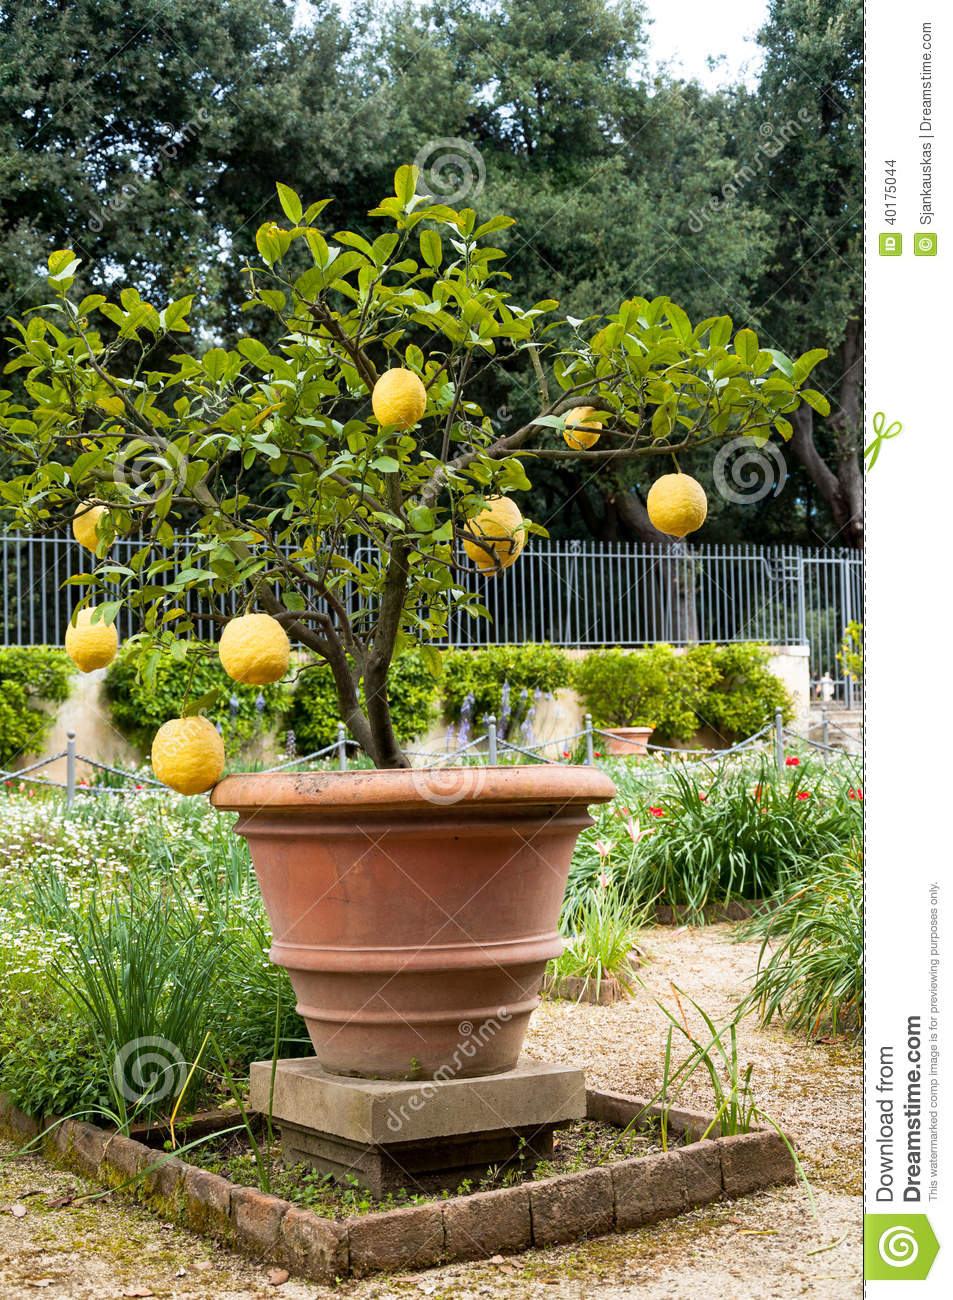 Lemon citrus plant stock photo image of tree natural for Growing a lemon tree in a pot from seed